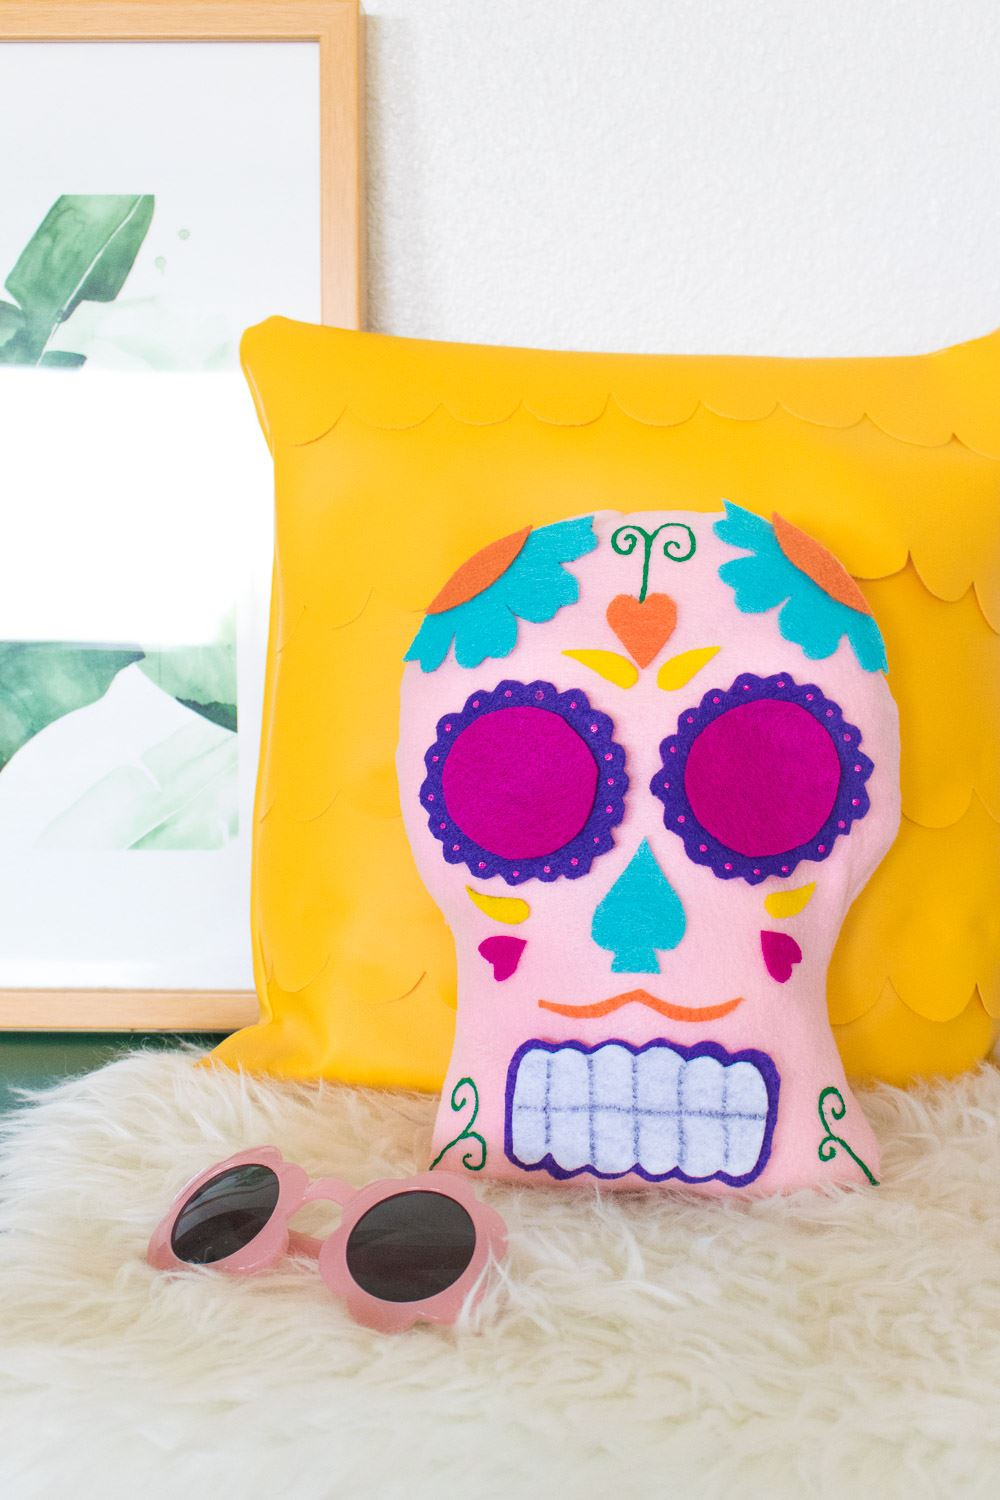 Picture Of DIY Sugar Skull Pillow For Día De Los Muertos